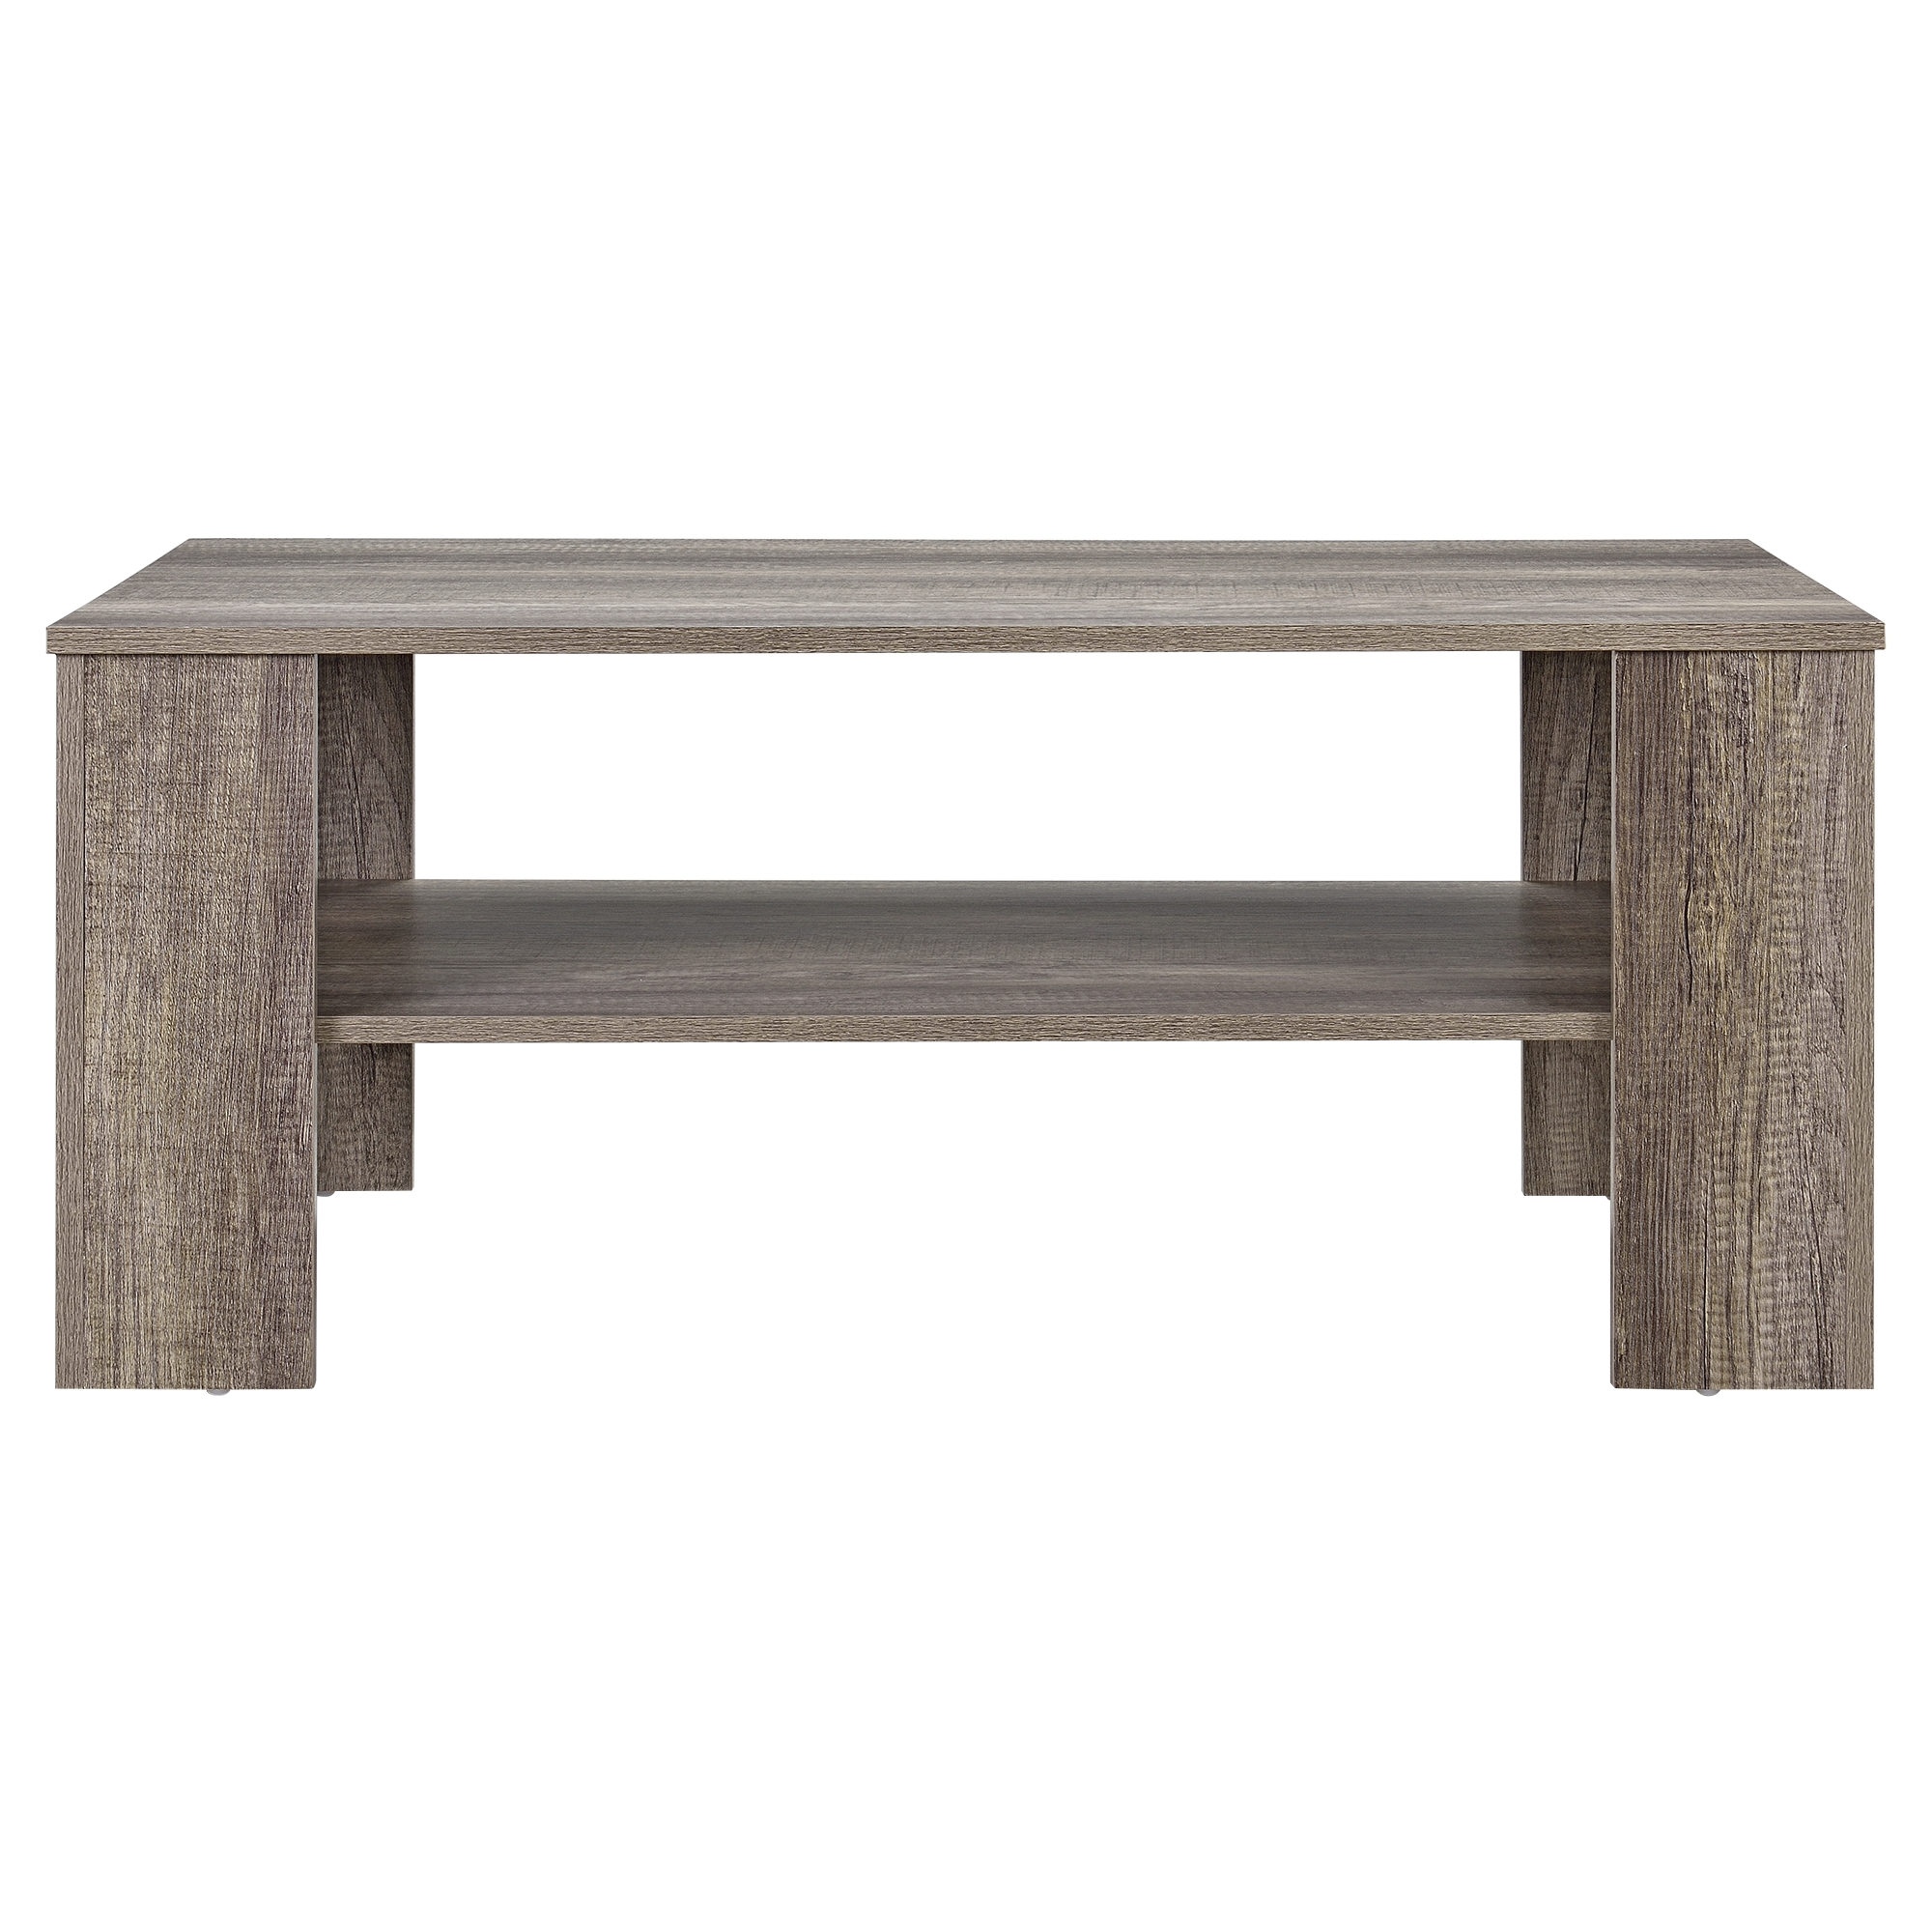 Coffee table antique oak 100x60cm living room for 100 year old oak table